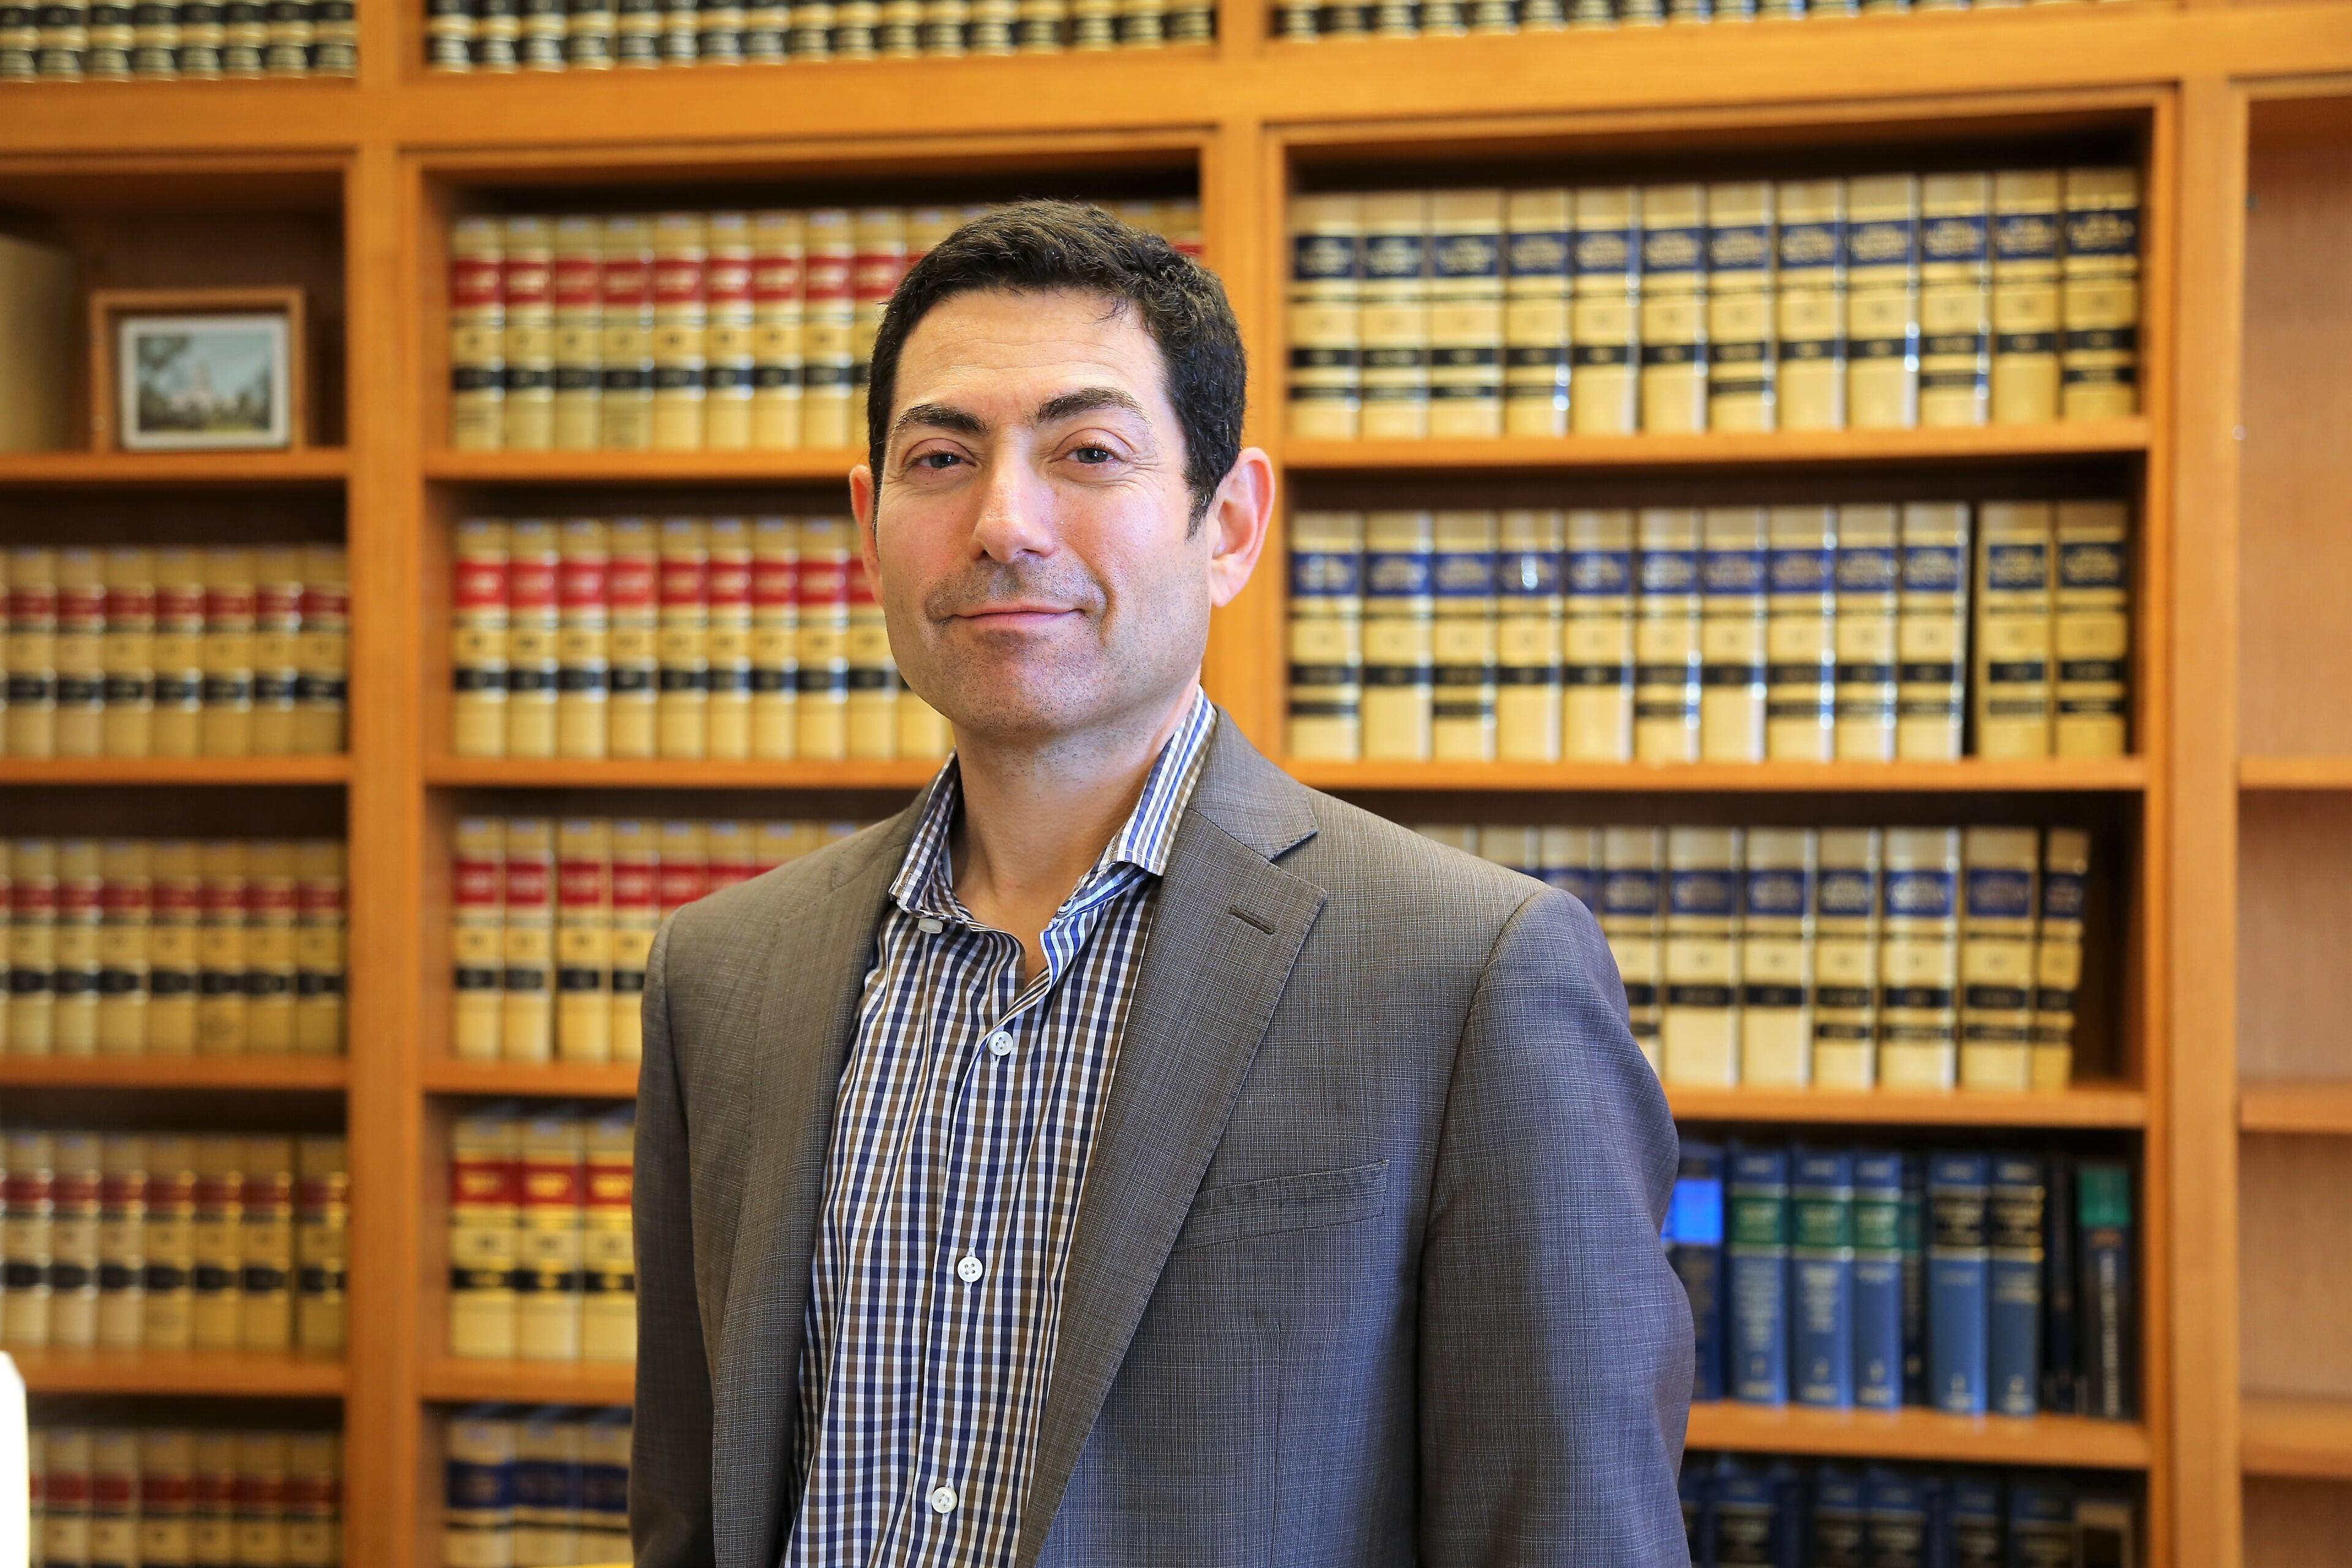 Justice Mariano-Florentino Cuéllar of the California Supreme Court